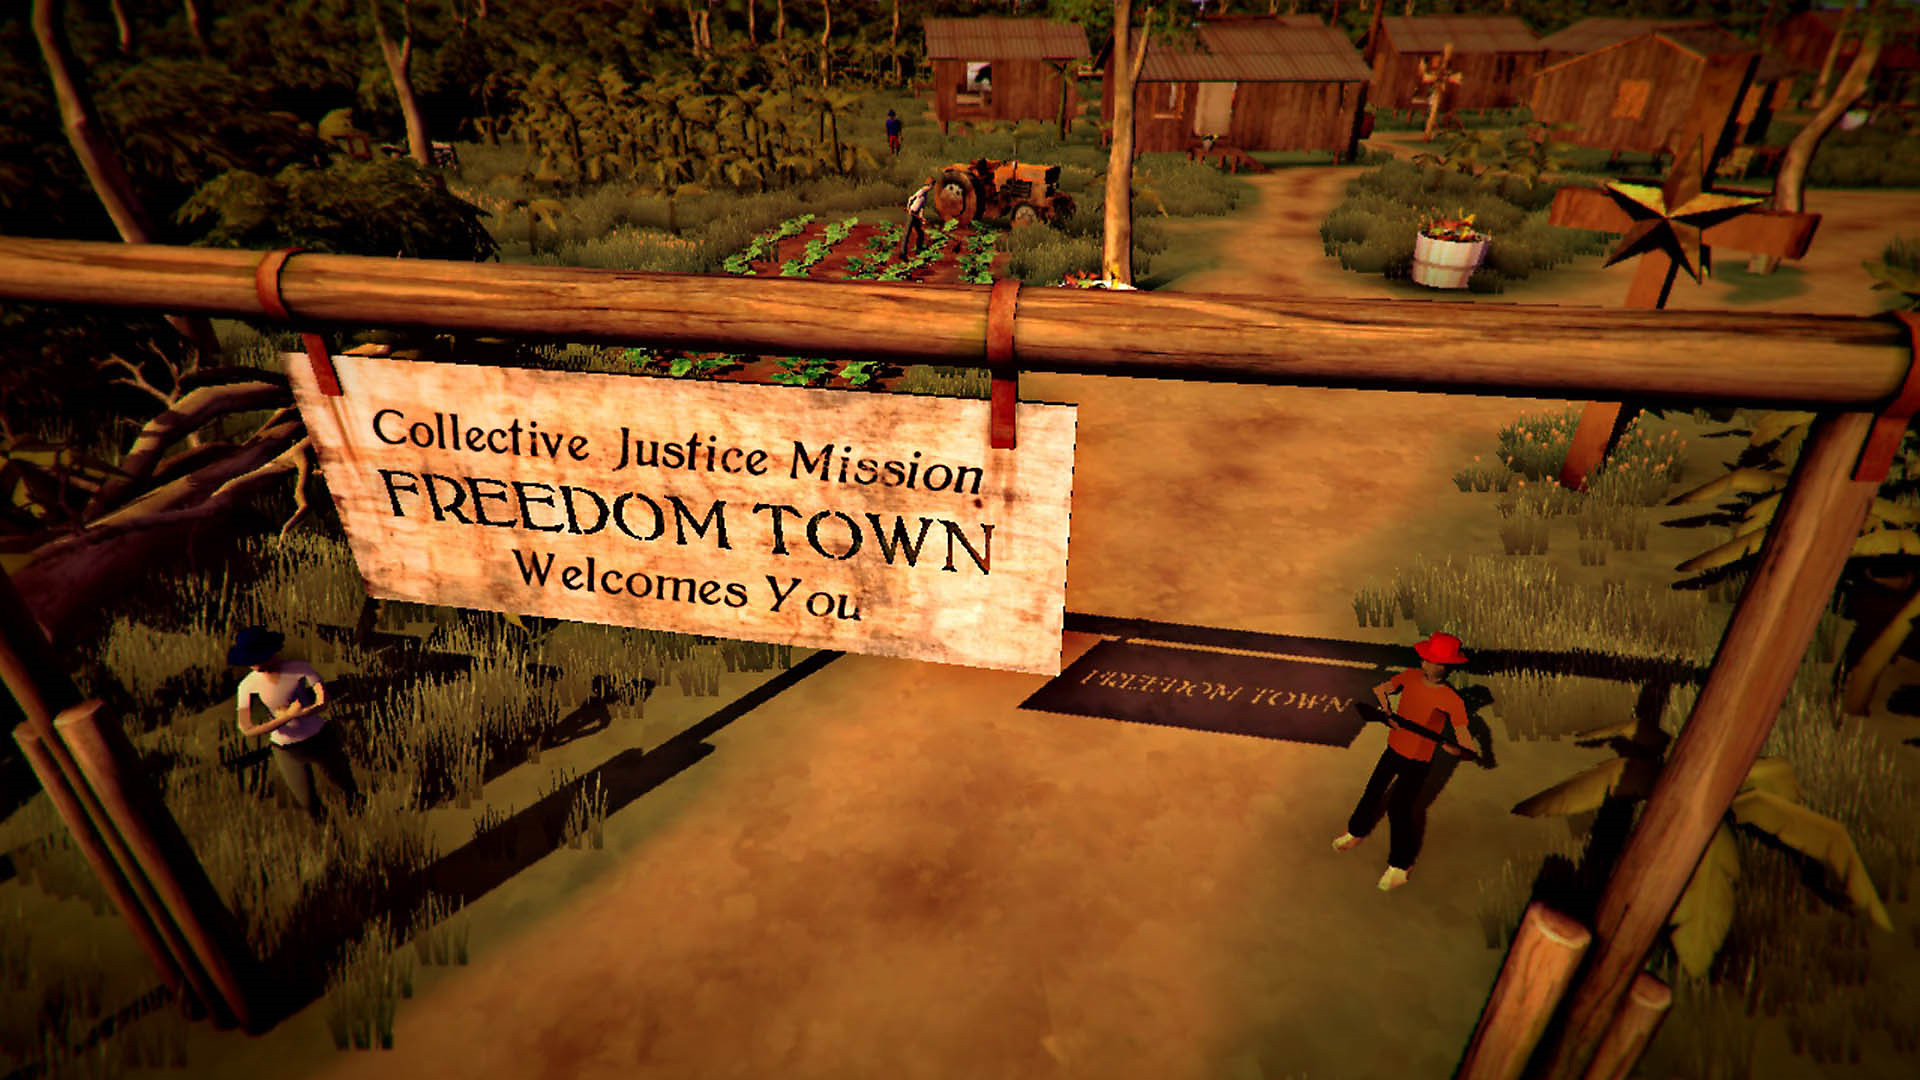 Freedom Town Welcomes You